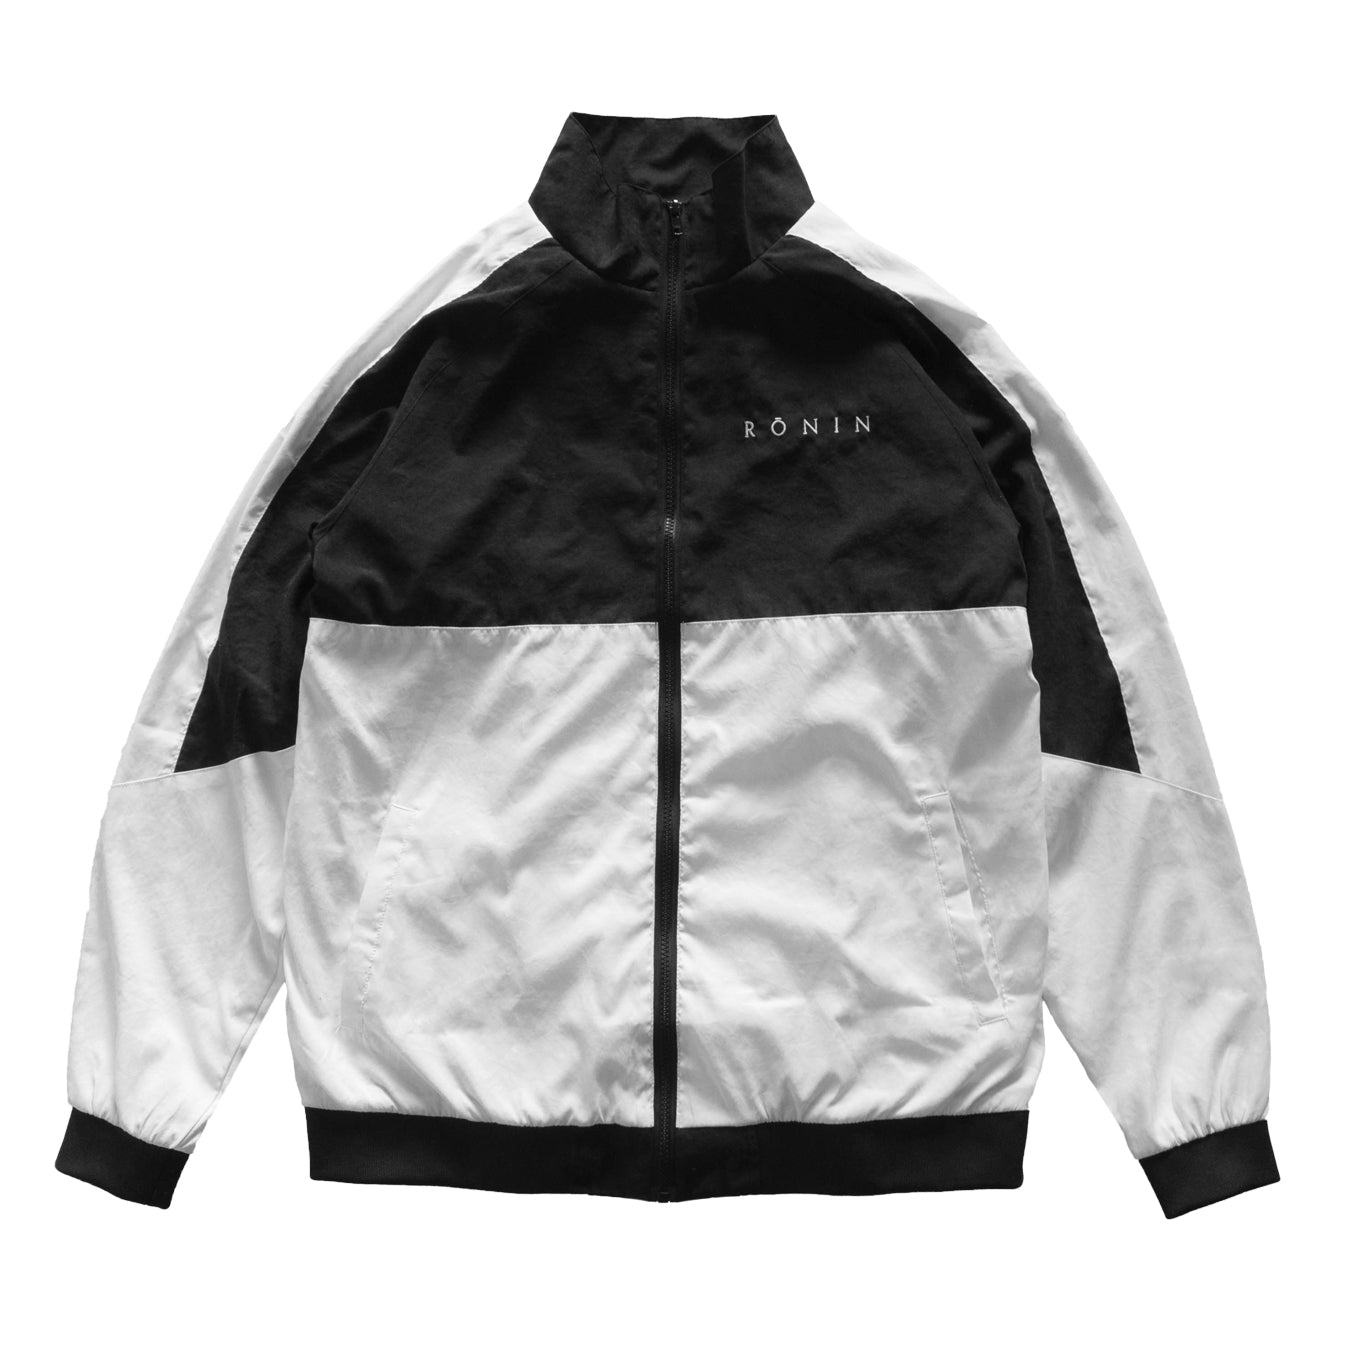 Viscose Logo Jacket - Black/White